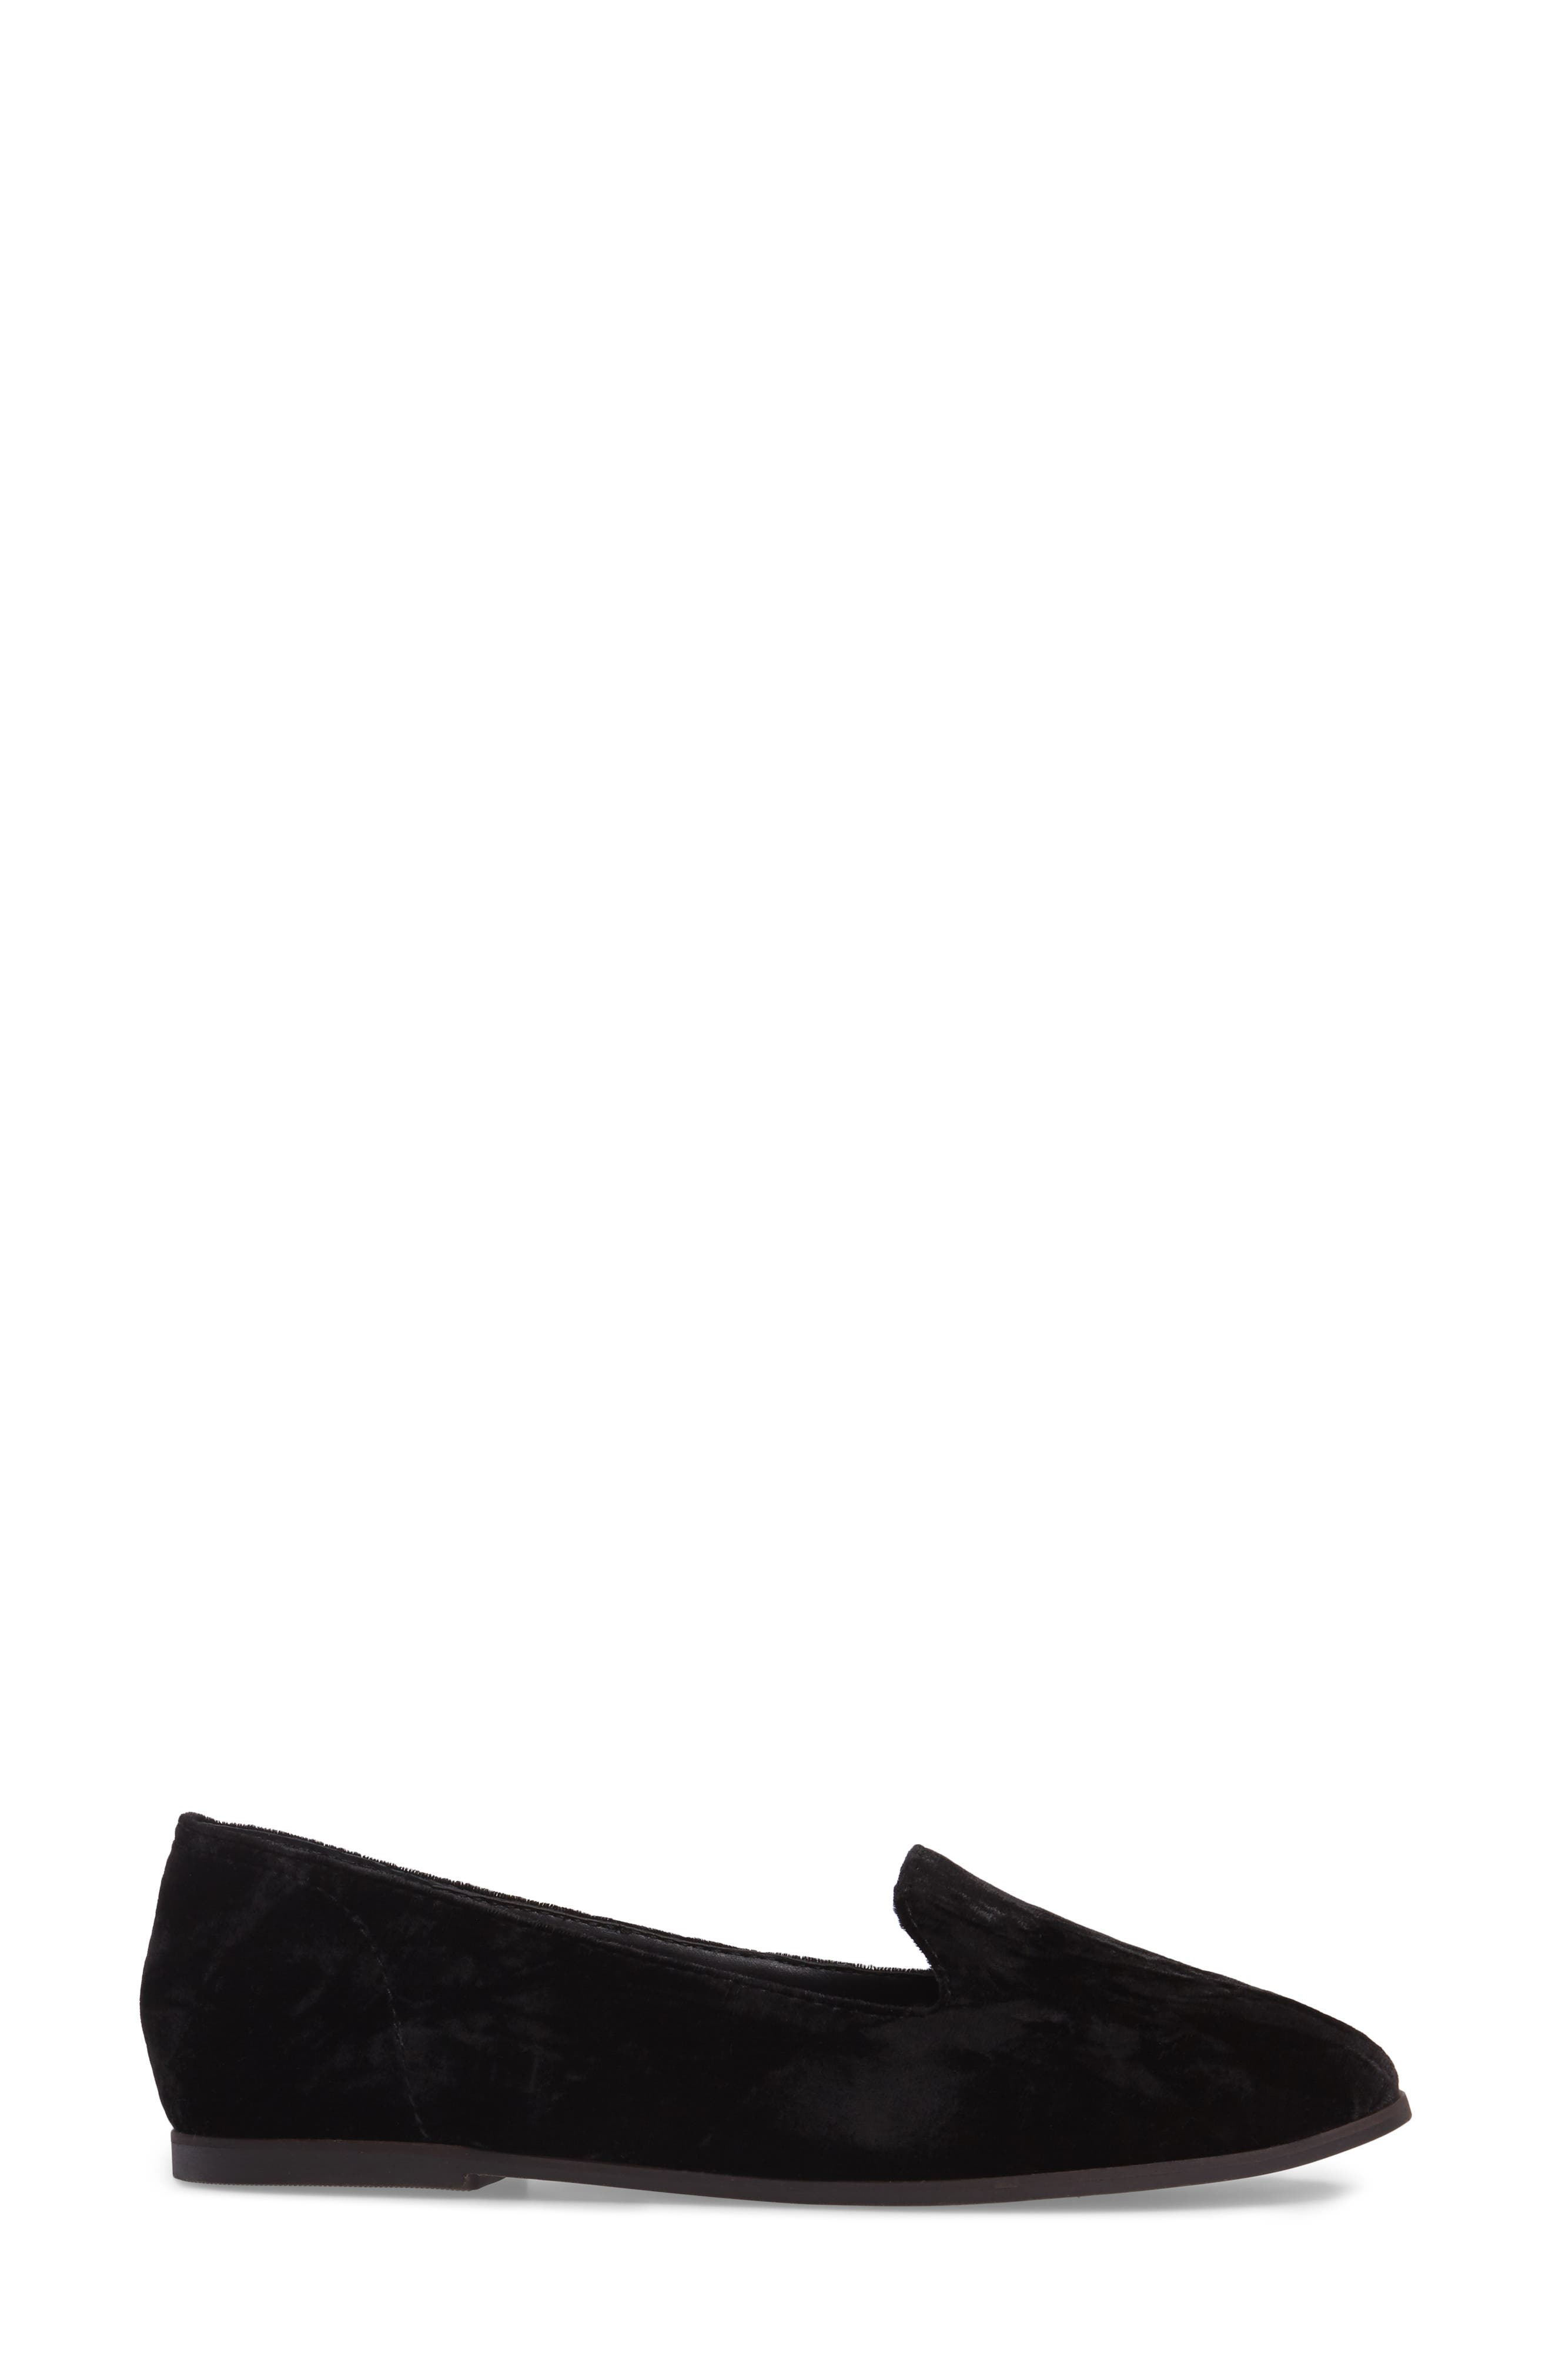 Carlyn Loafer Flat,                             Alternate thumbnail 3, color,                             001